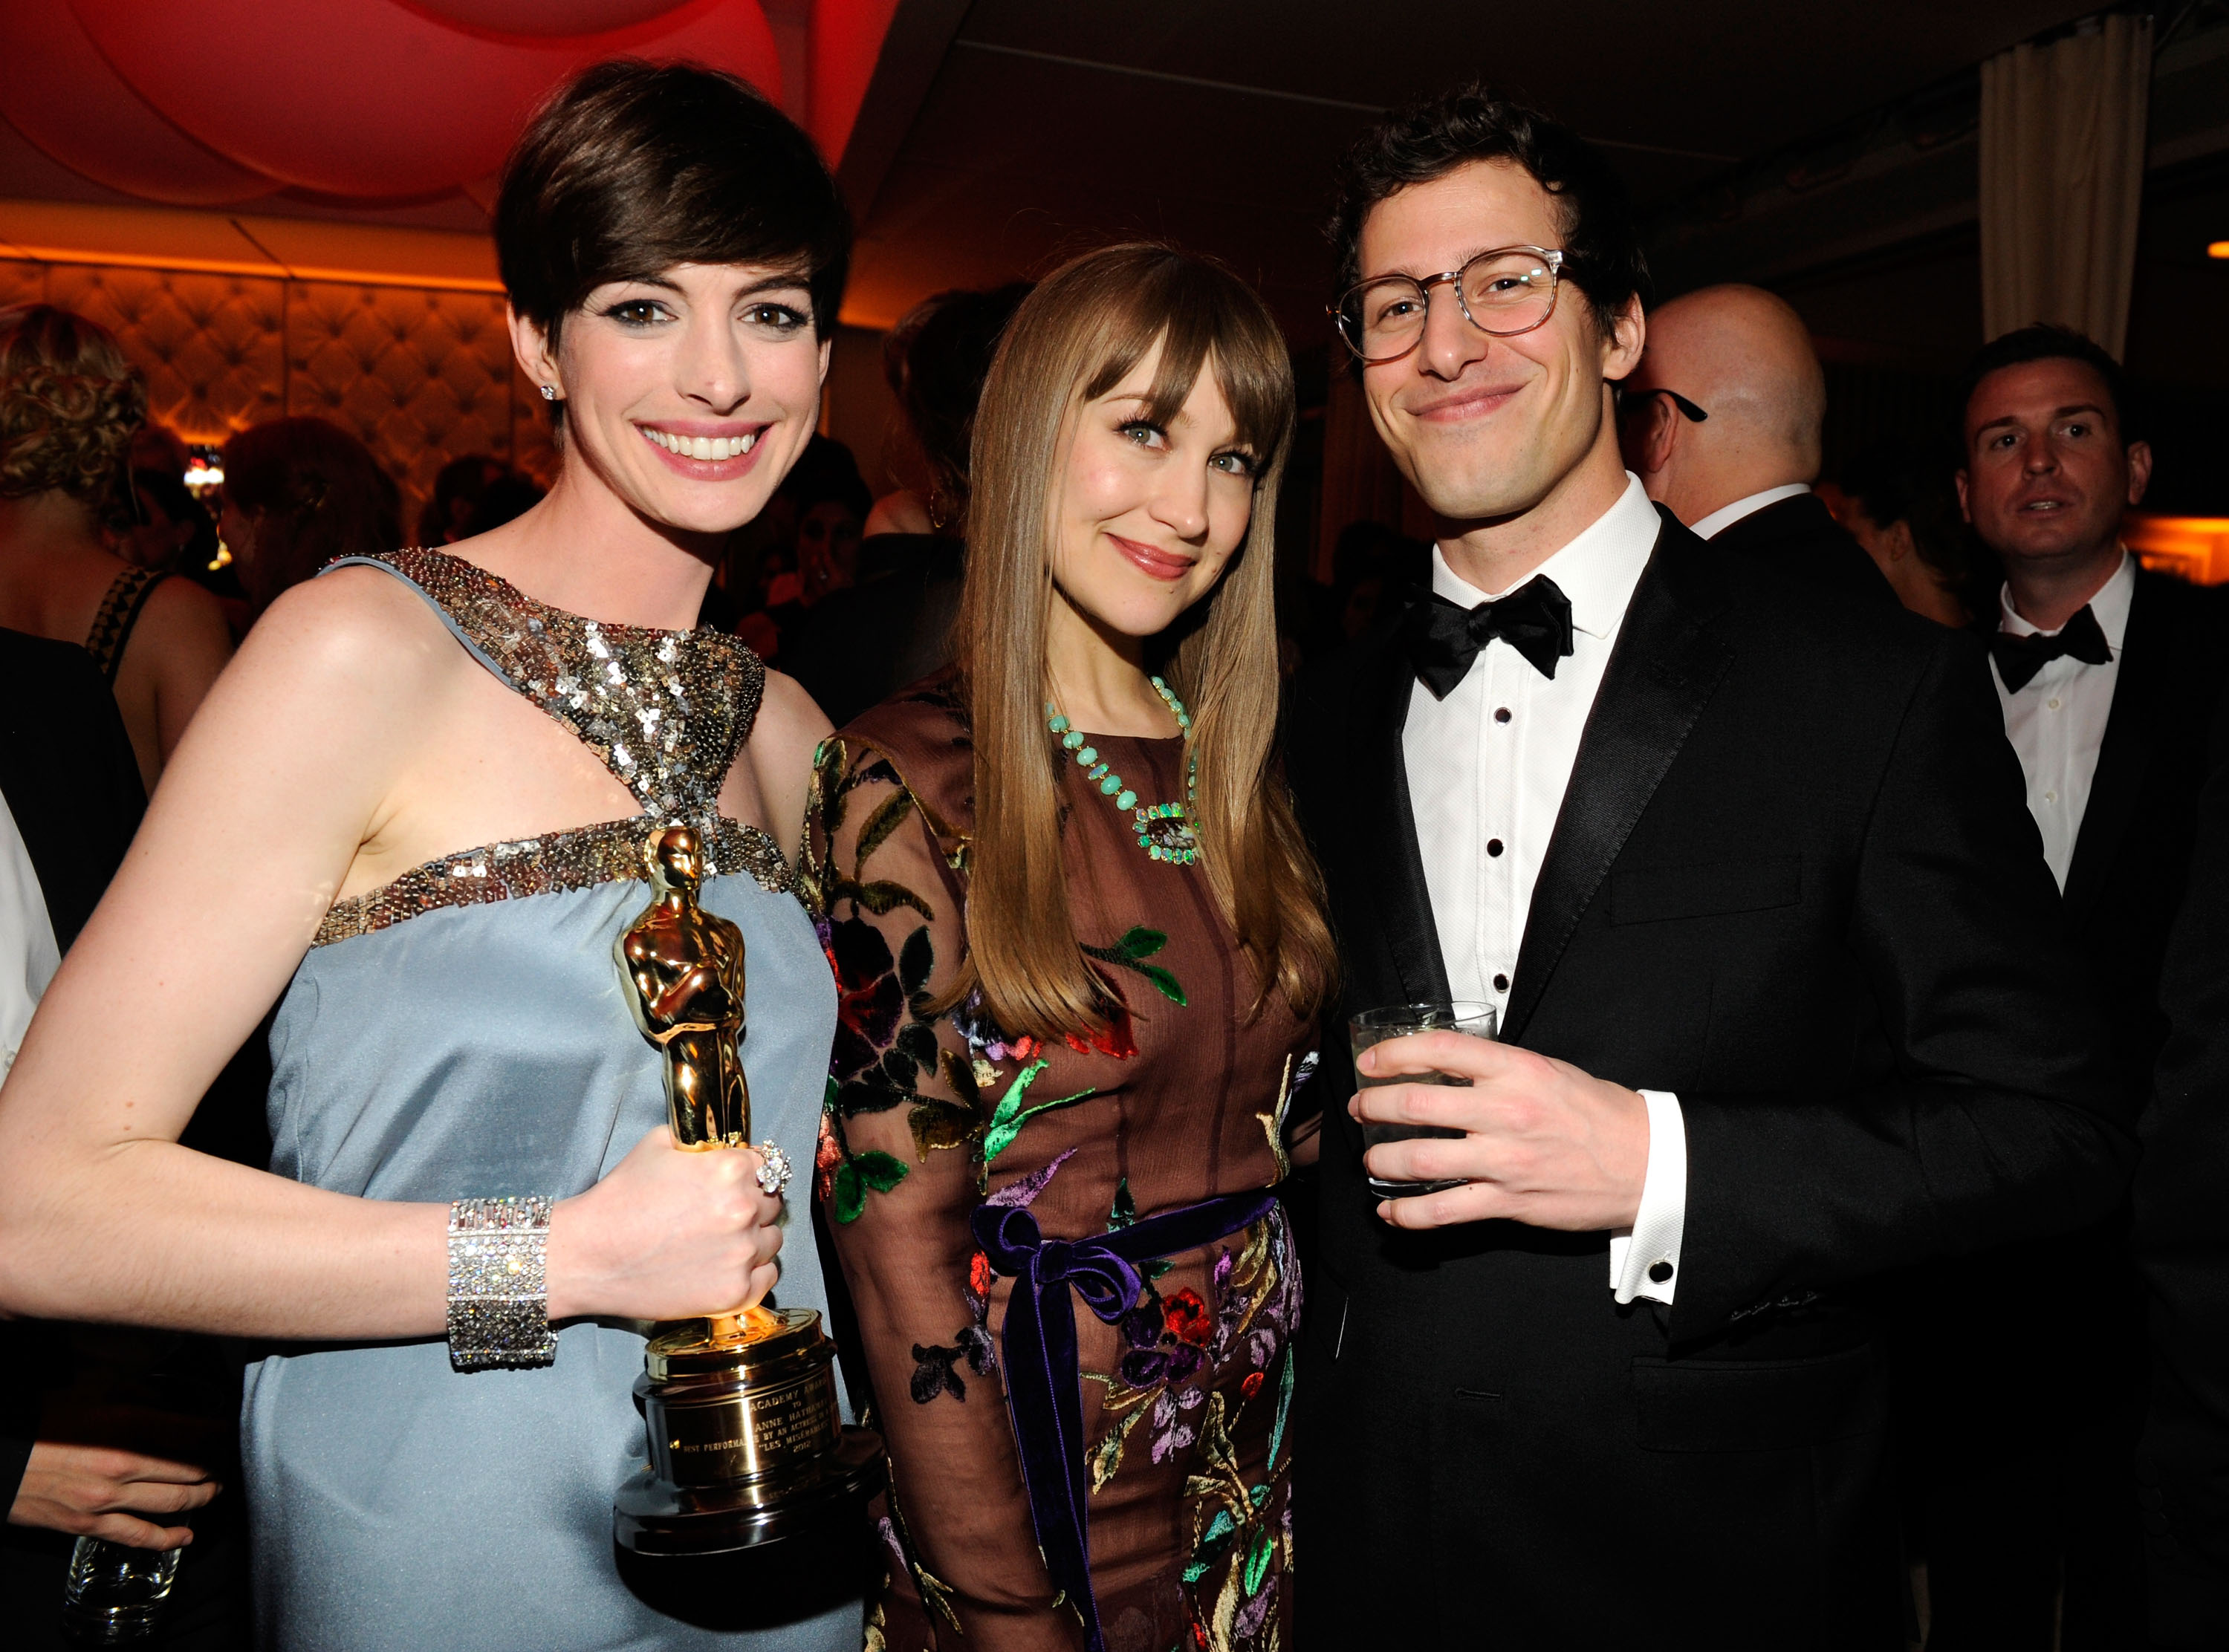 Andy Samberg met up with Anne Hathaway and Joanna Newsom at Vanity Fair's Oscar afterparty.